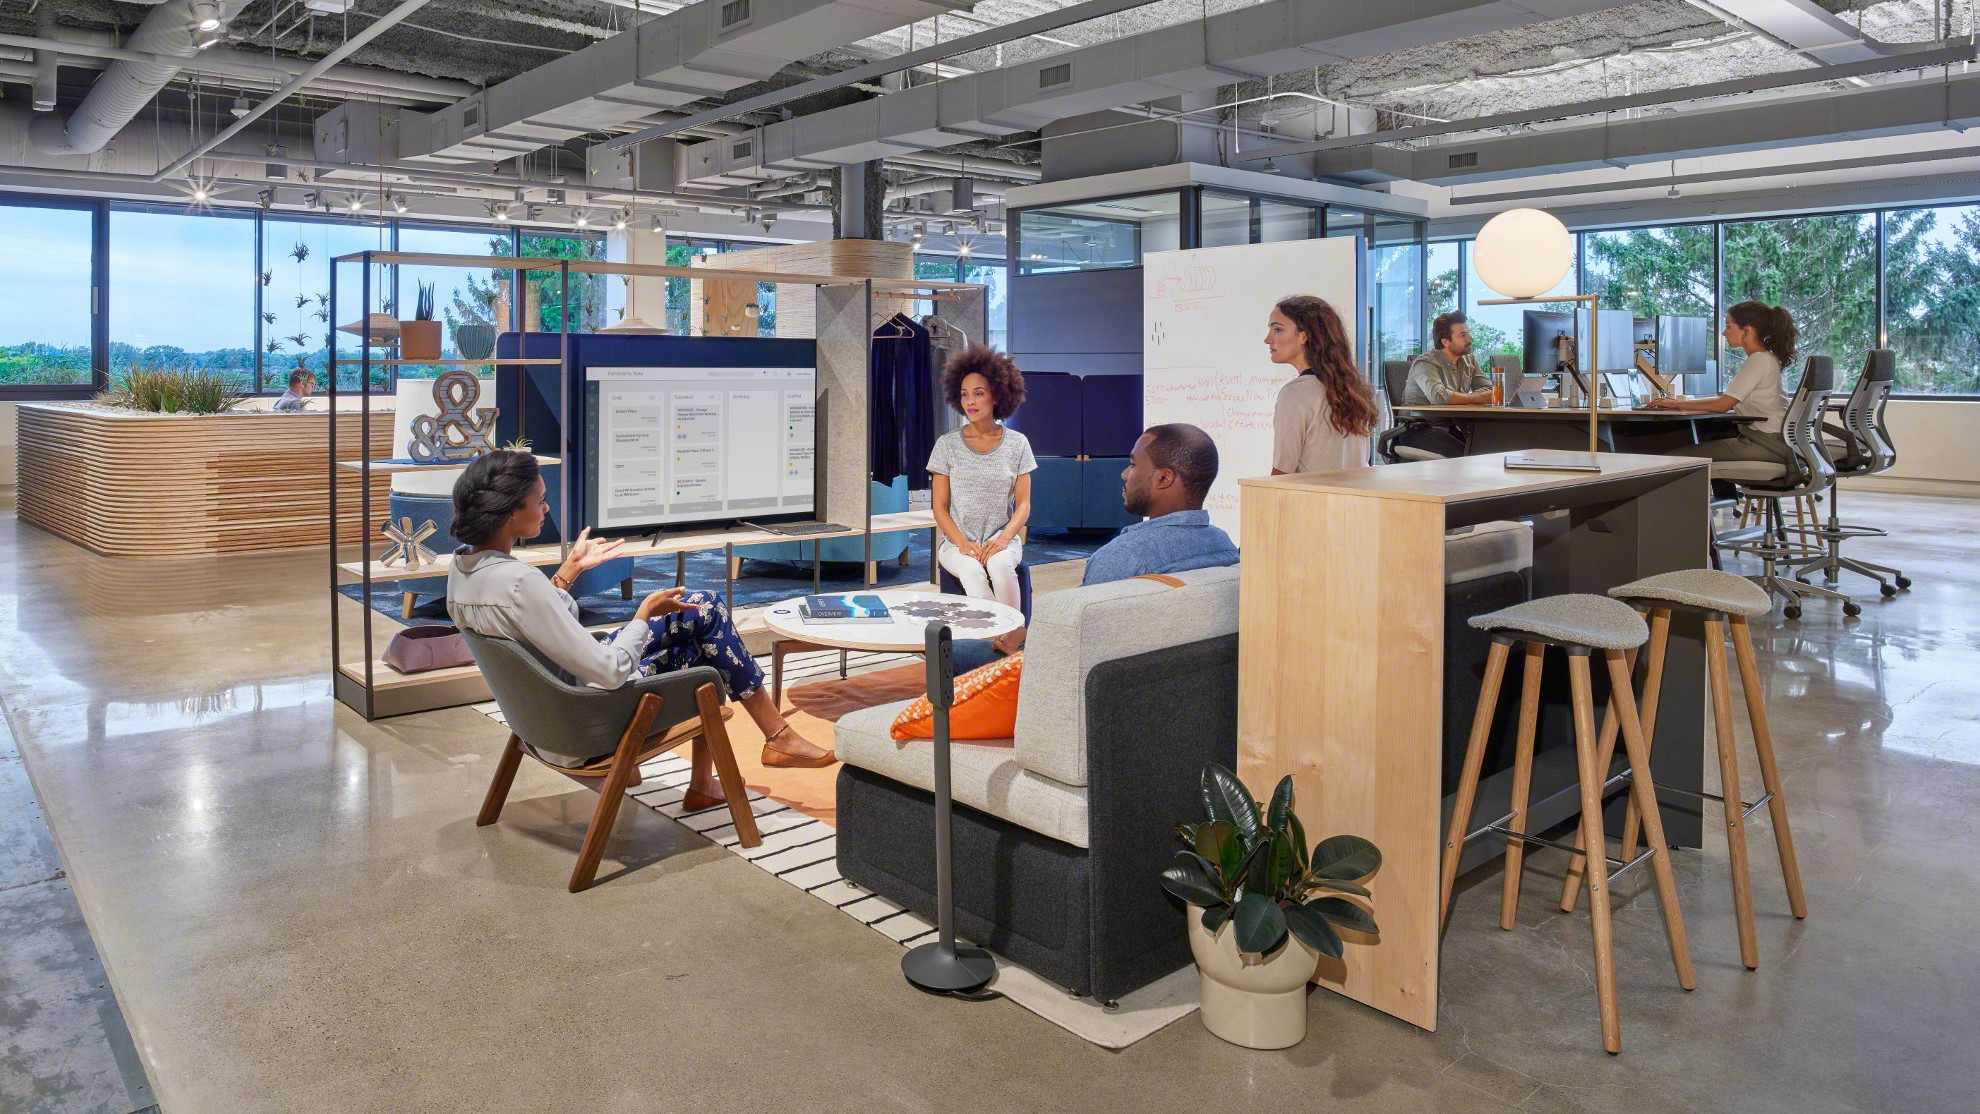 3 Ways Inspiration from Home Can Improve Your Commercial Workspace